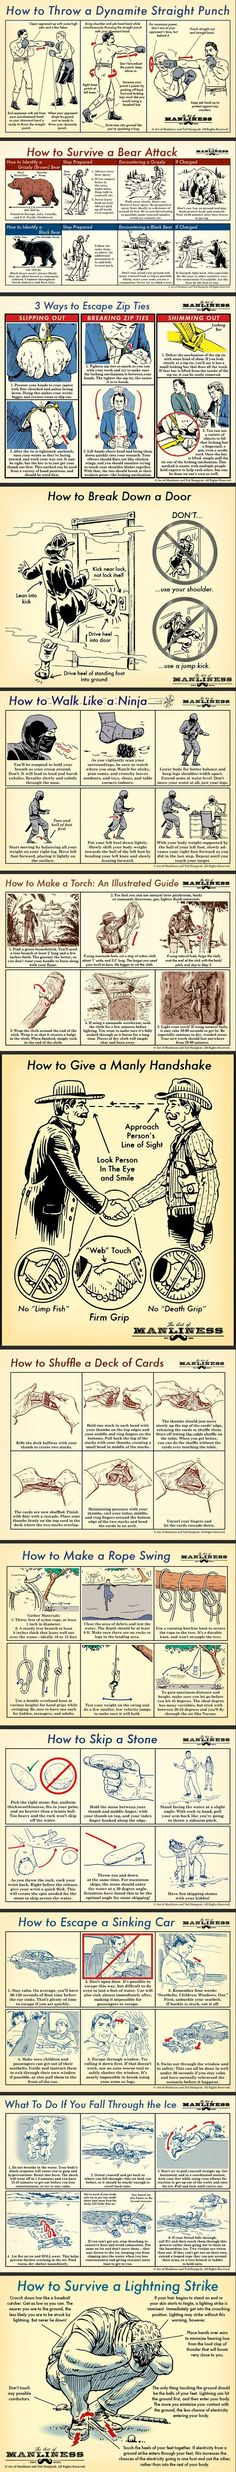 Some manly survival skills to improve your manliness